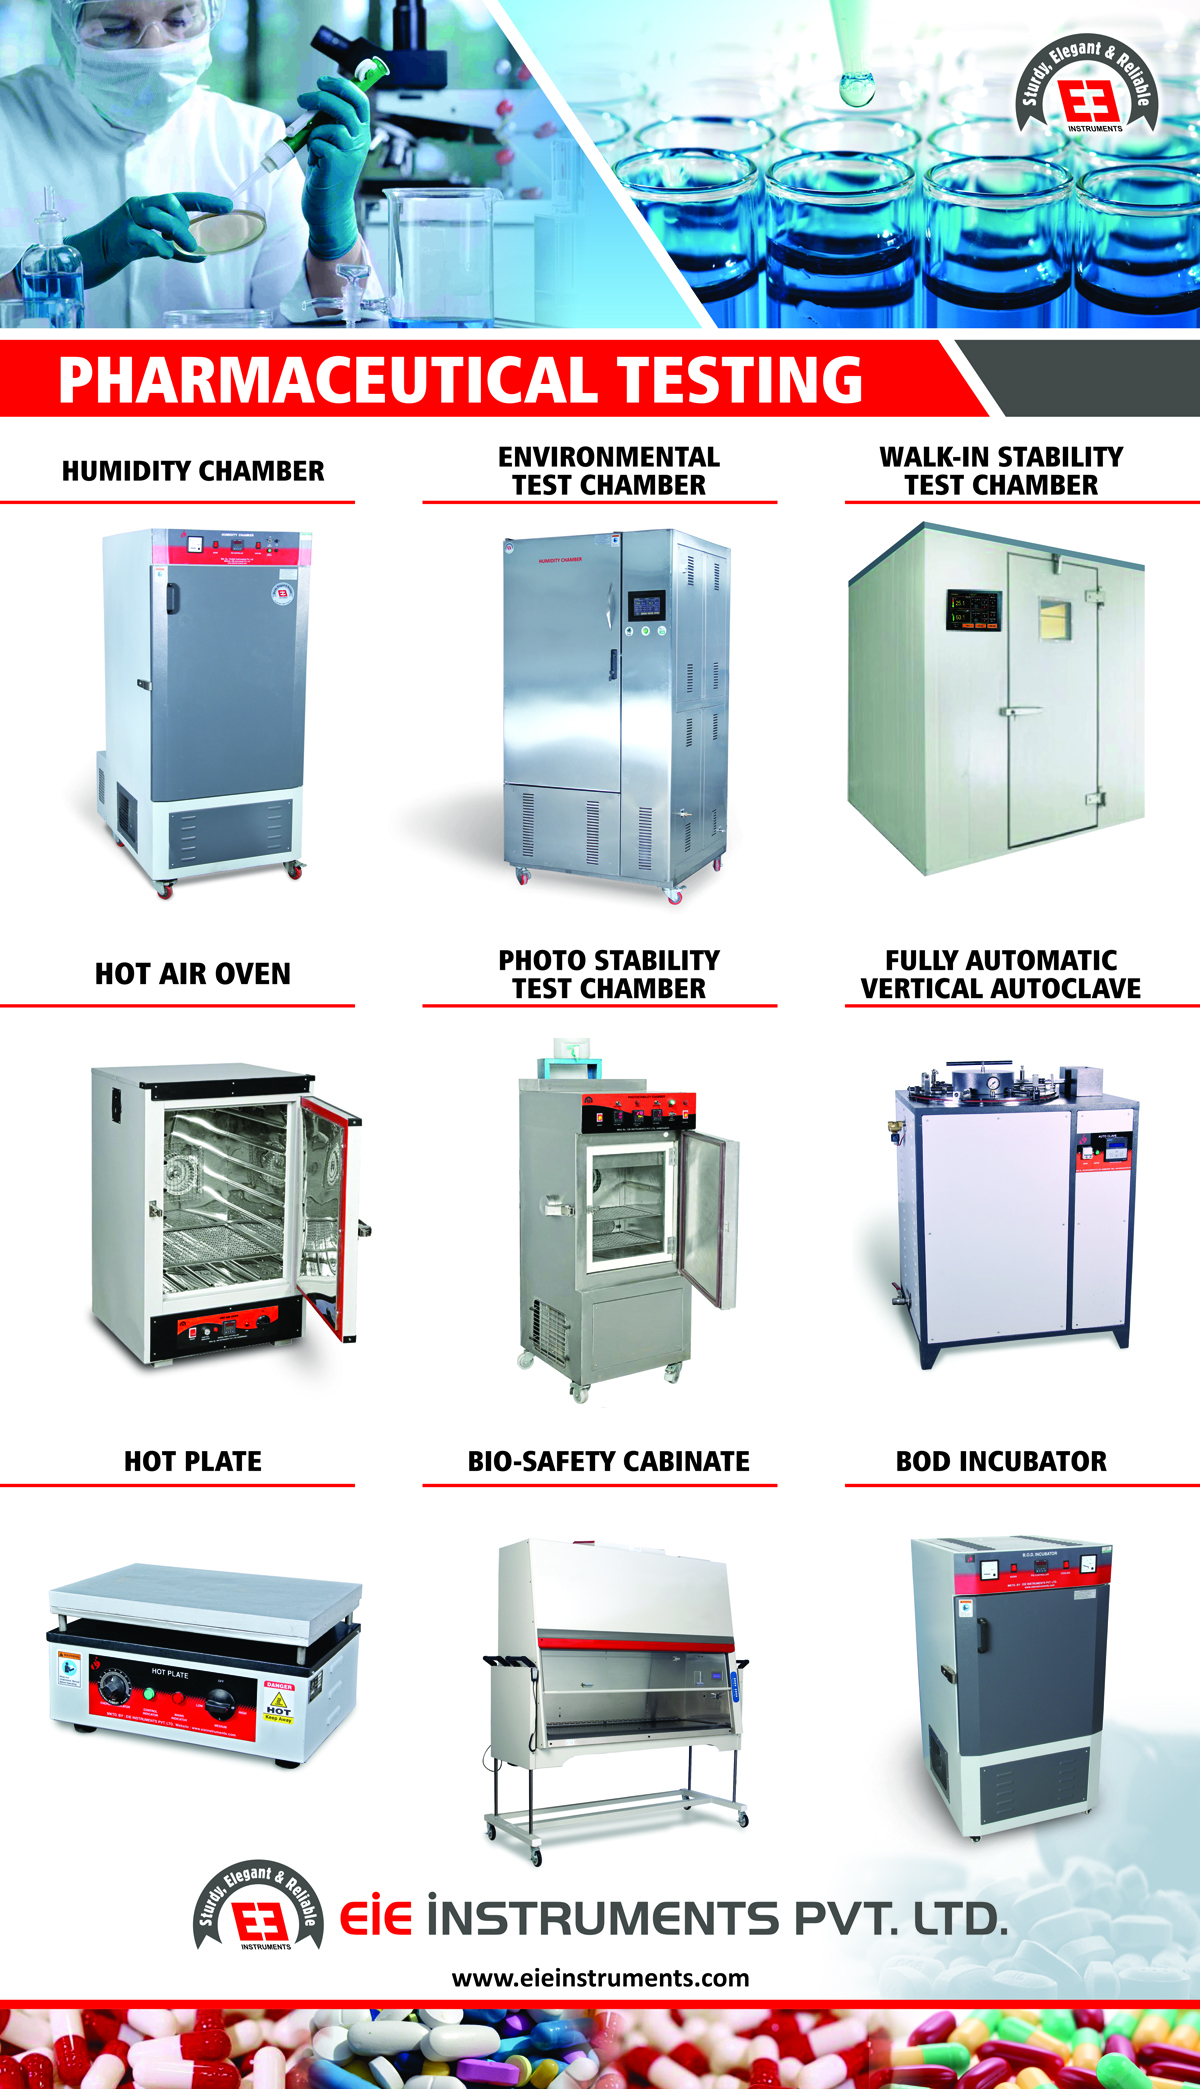 Vertical Autoclave - Fully Automatic